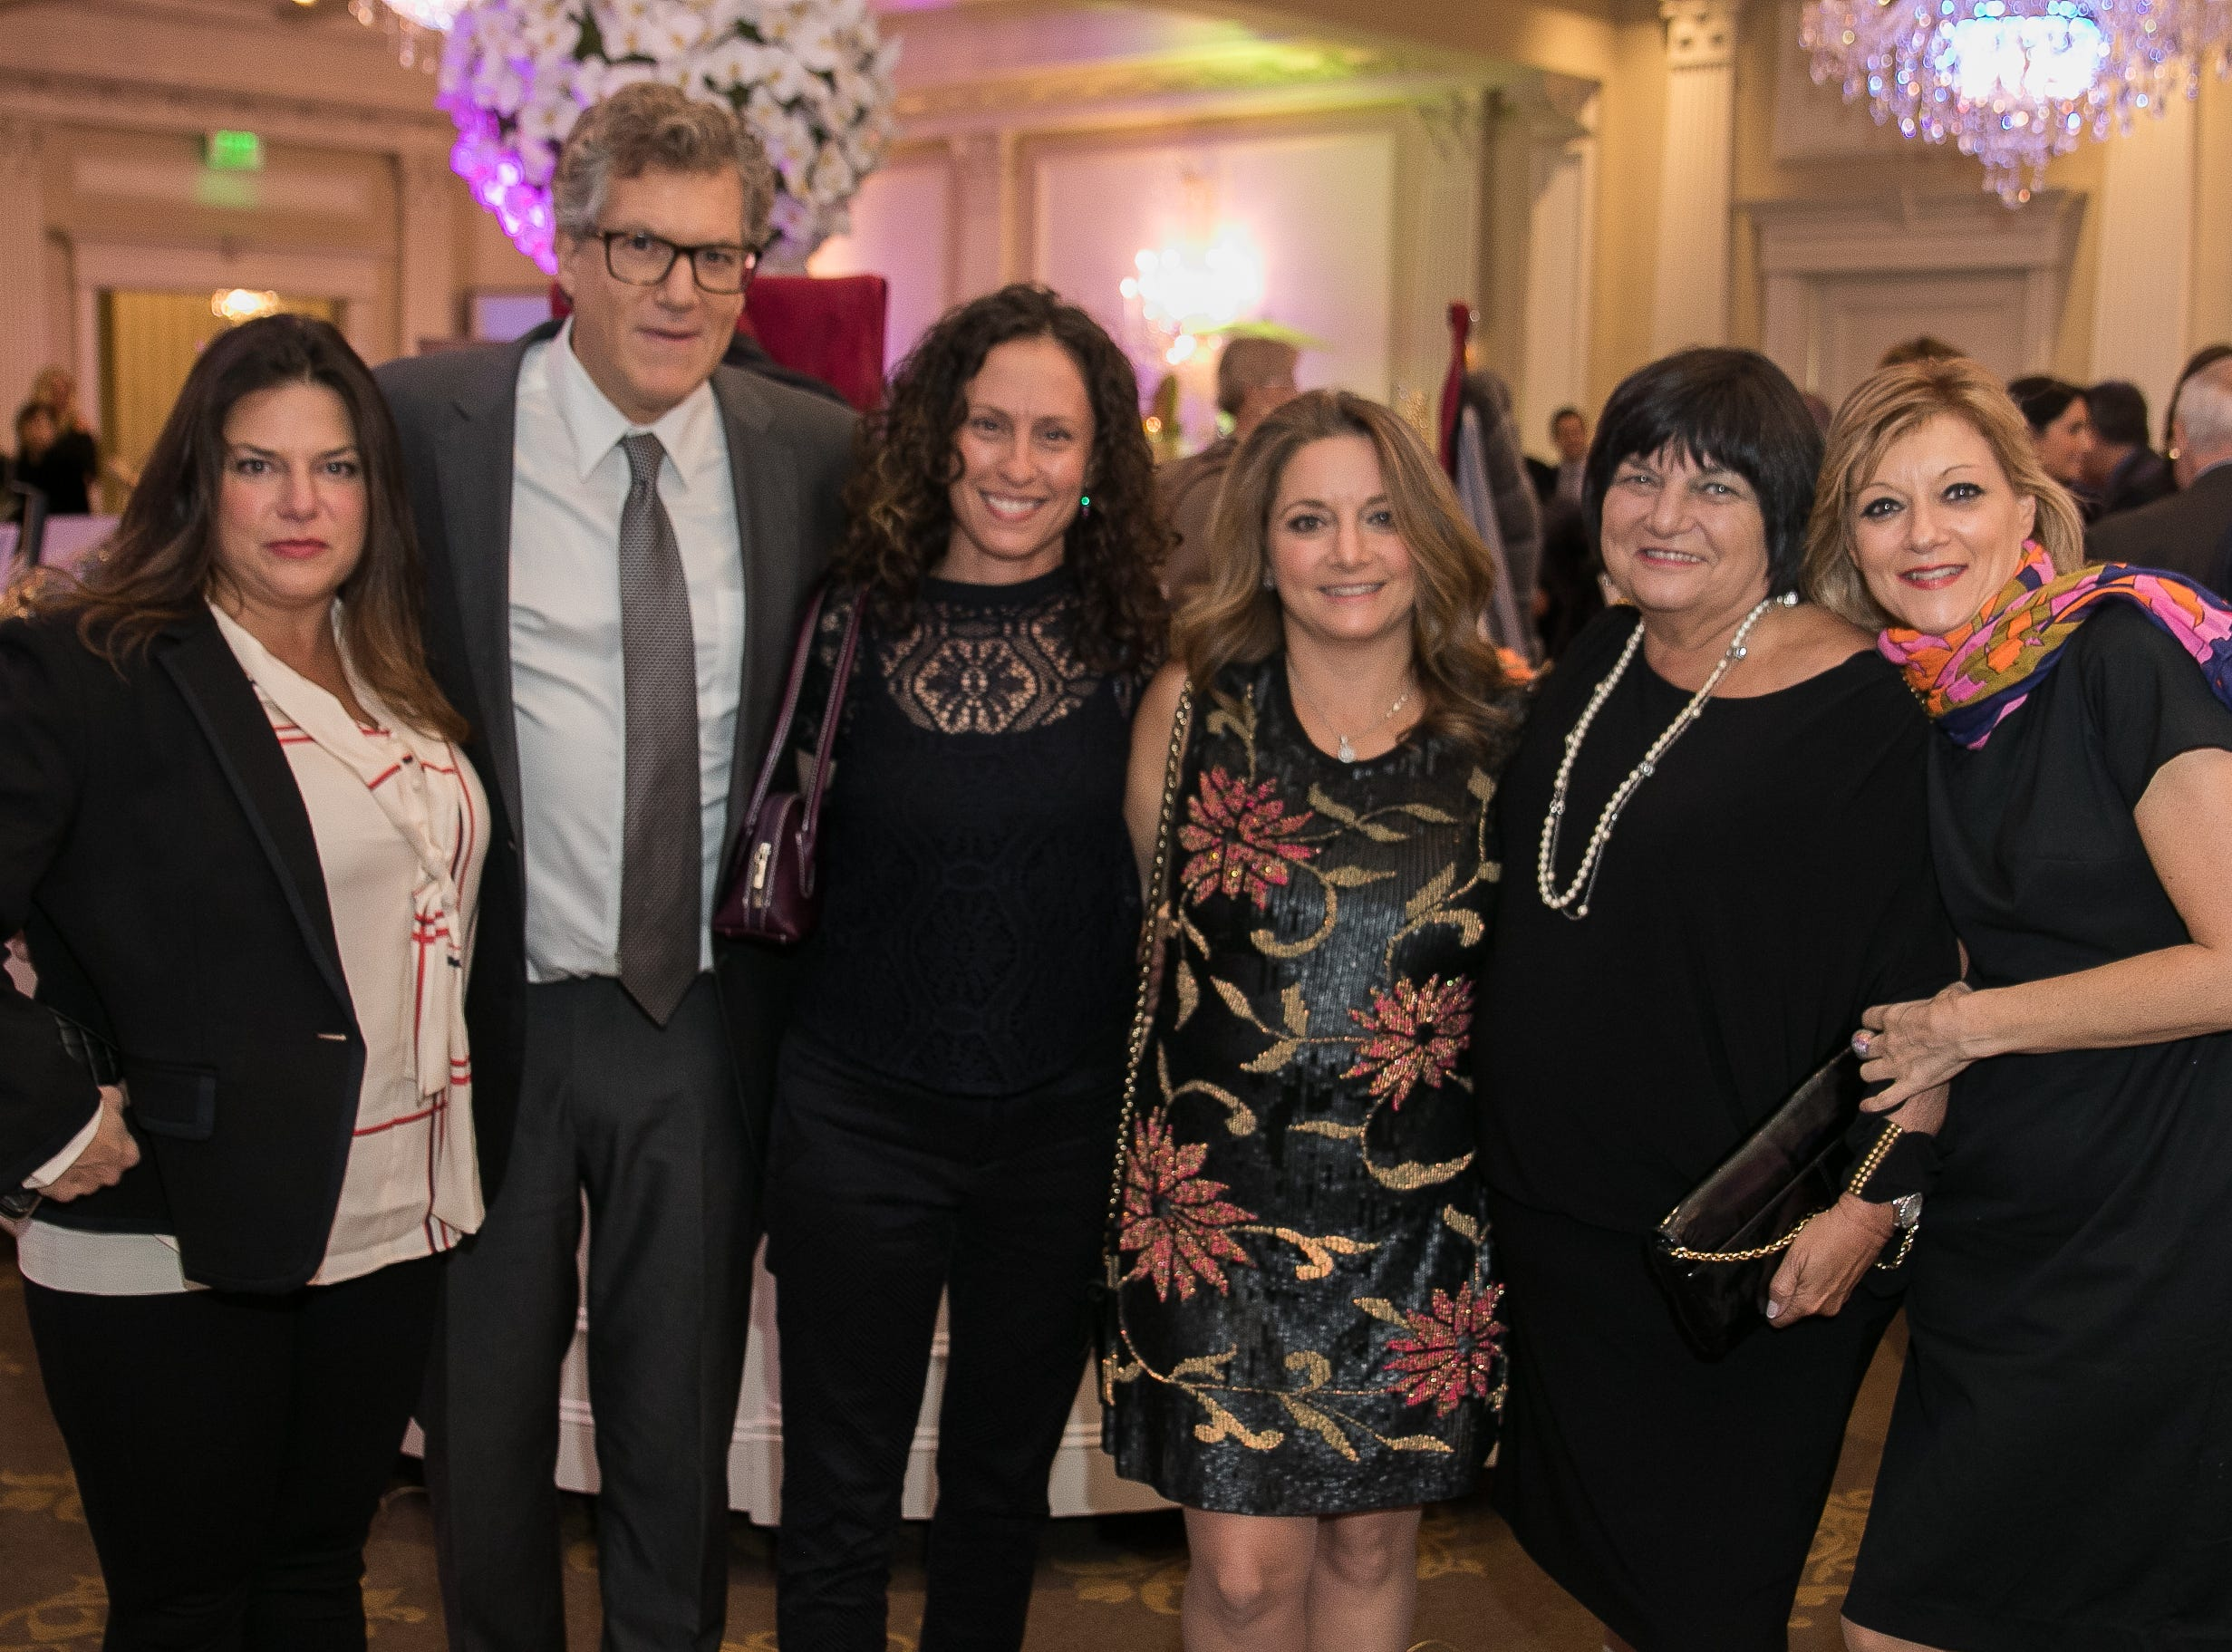 Cindy Massoff, Erez Kreitner, Stefanie Nelson, Honoree Gloria Nelson, Ellen Goldberg, Geri Meyer. Bergen Family Center celebrated 120 years of service with dinner and a silent auction at Th e Rockleigh Country Club.11/1/2018